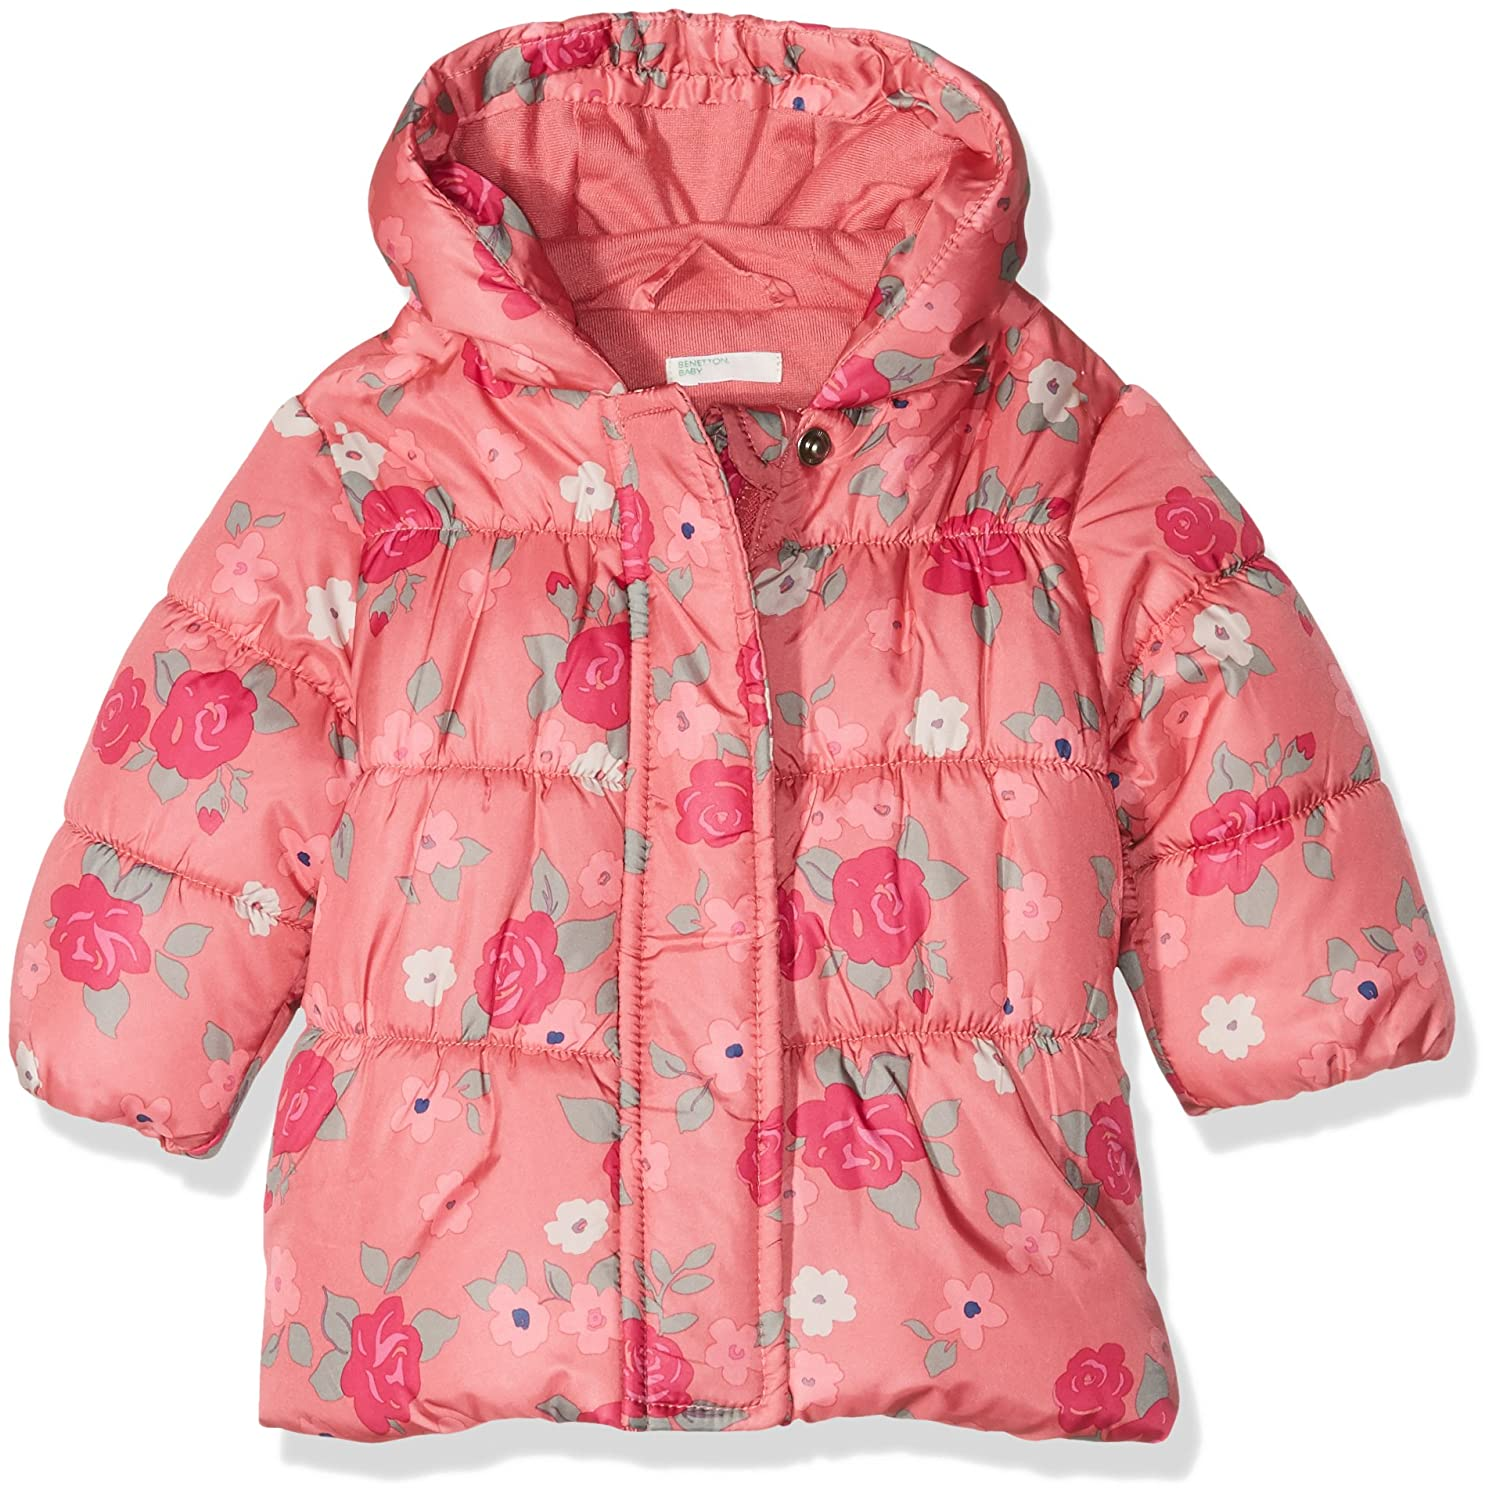 United Colors of Benetton Baby-Mädchen Jacke Rosa (Pink Flower Print) 2AW55330E